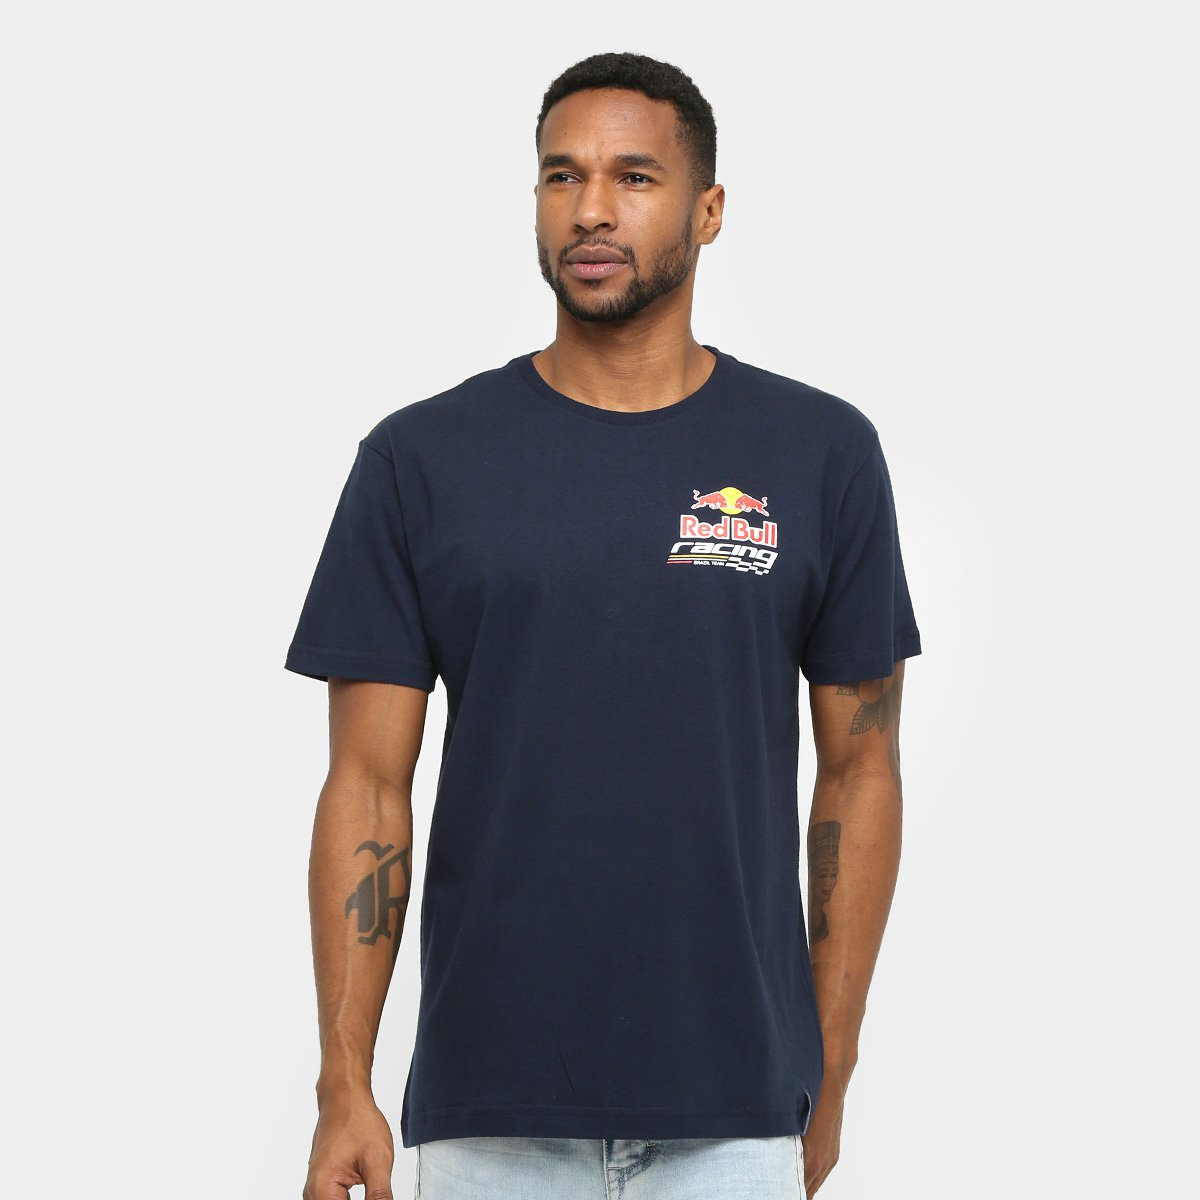 1d31e1e551 Camiseta Red Bull Racing Stock Car Dynamic Masculina - Compre Agora ...